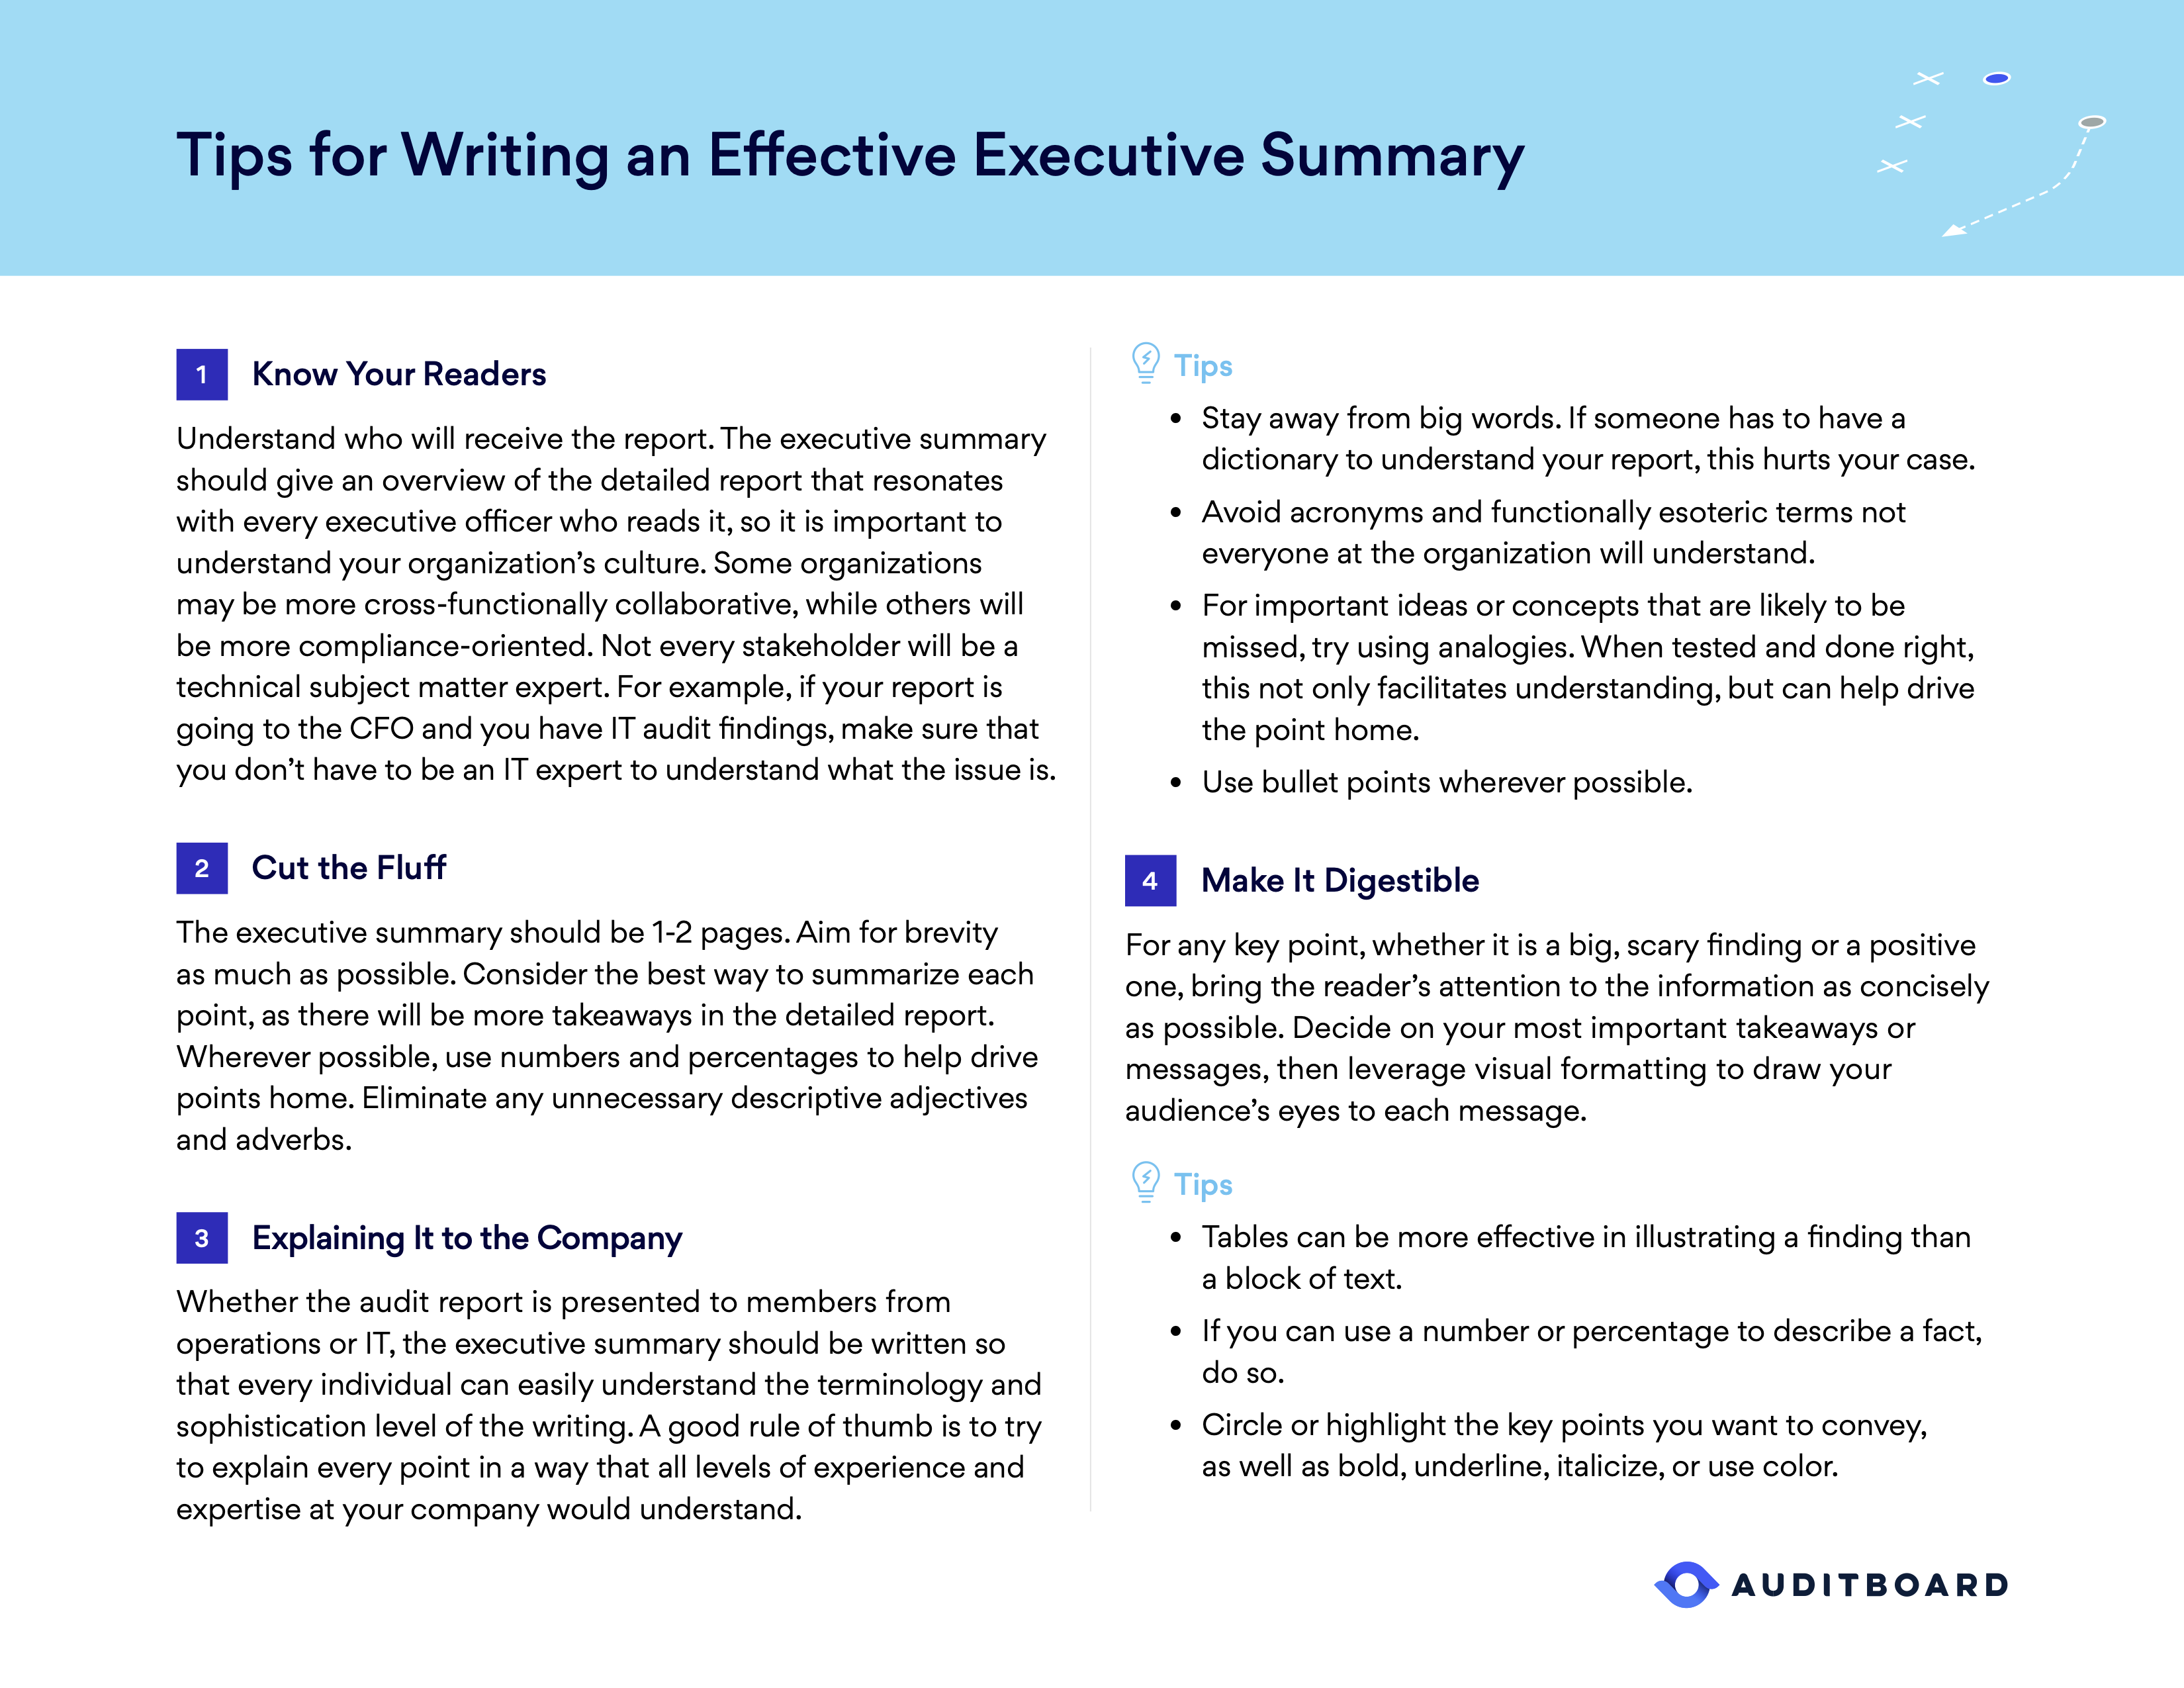 Tips for Writing an Effective Executive Summary